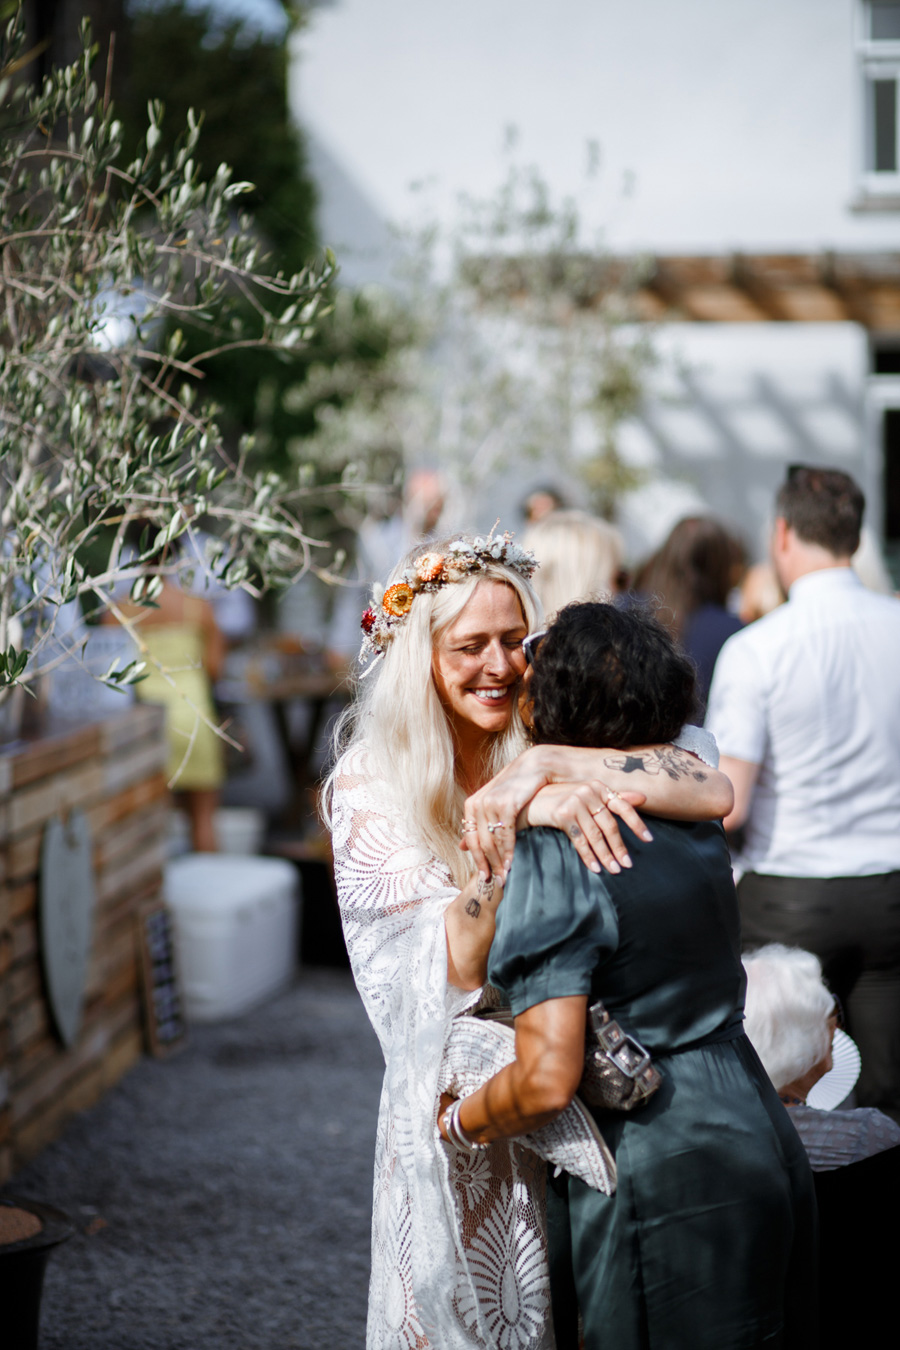 Anran devon wedding in the summer sun 05